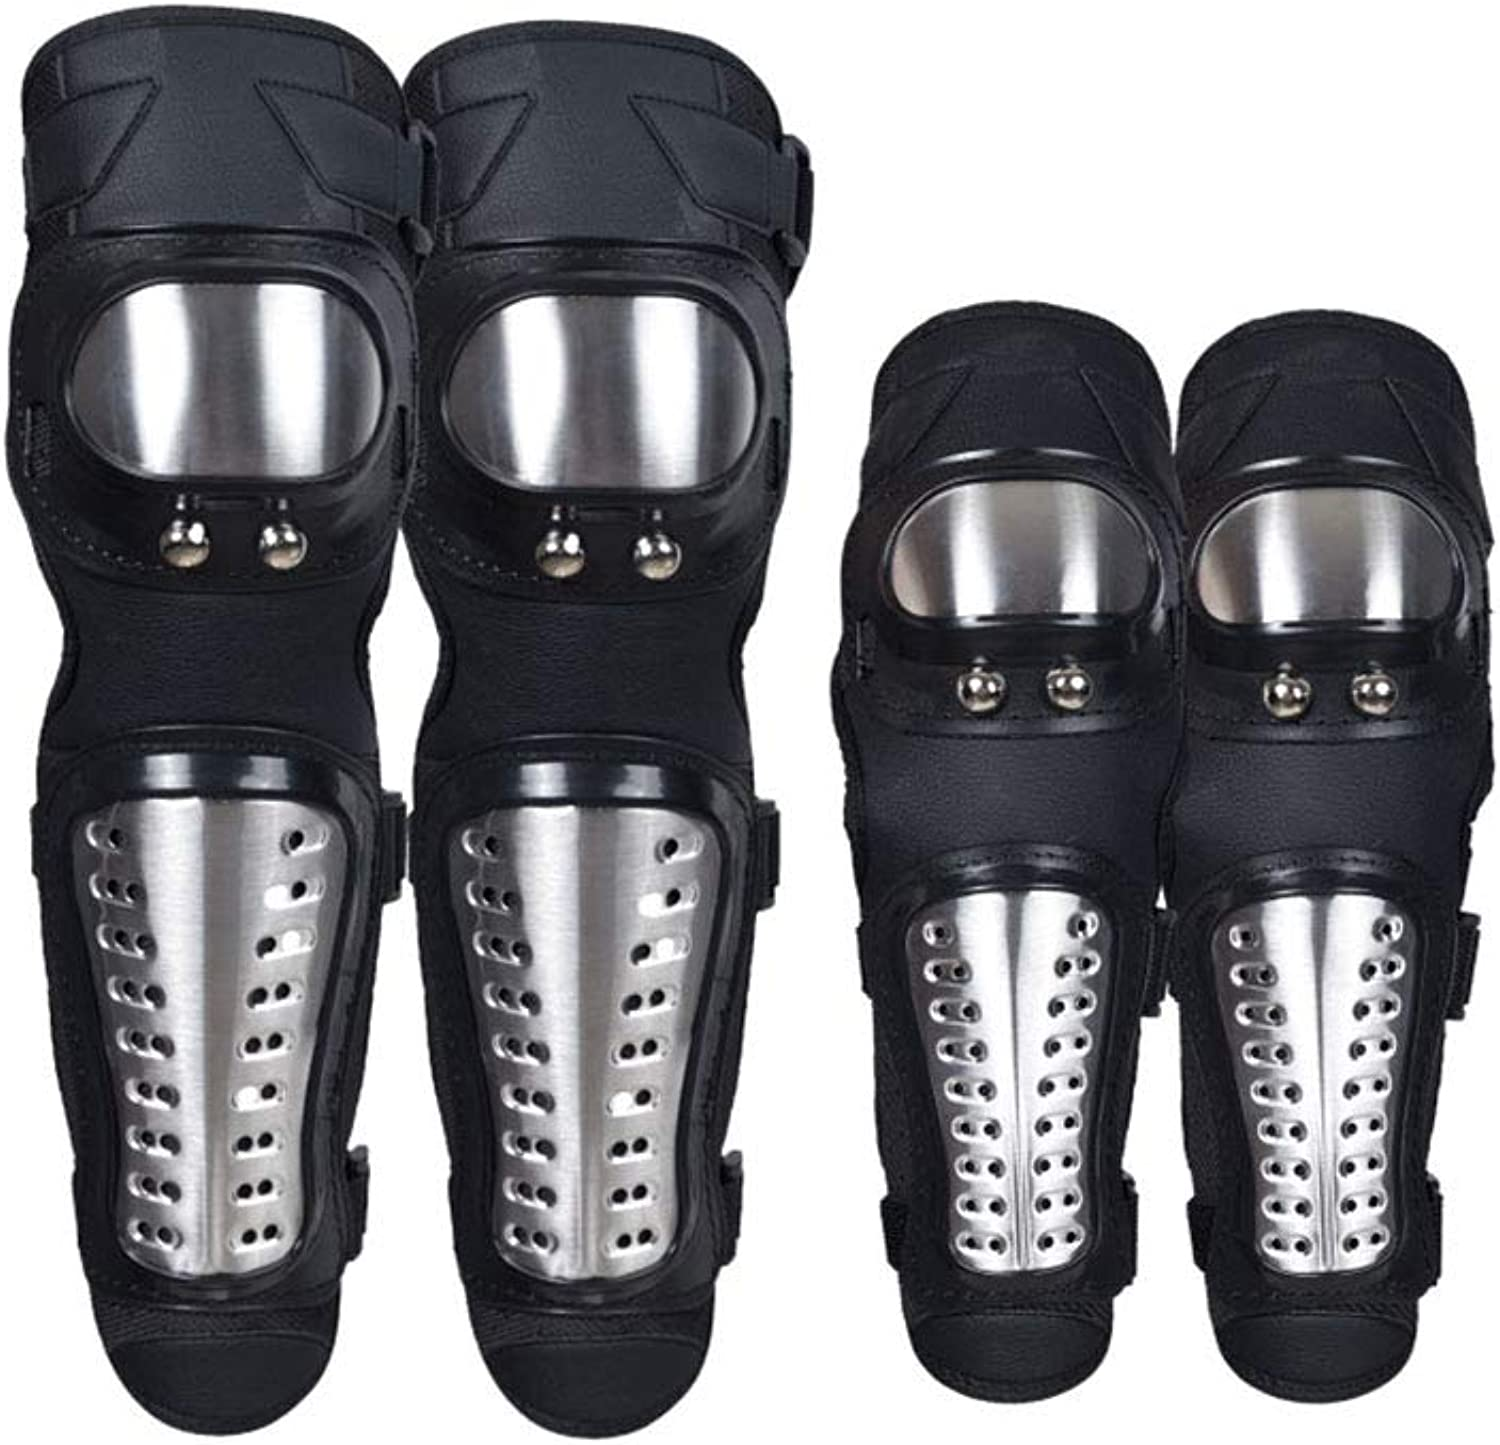 X-dtit Knee Pads Motorcycle - 4Pcs Adults Alloy Steel Motorcycle ATV Motocross Elbow Knee Shin Guards Predector Motocross Racing Adult Knee